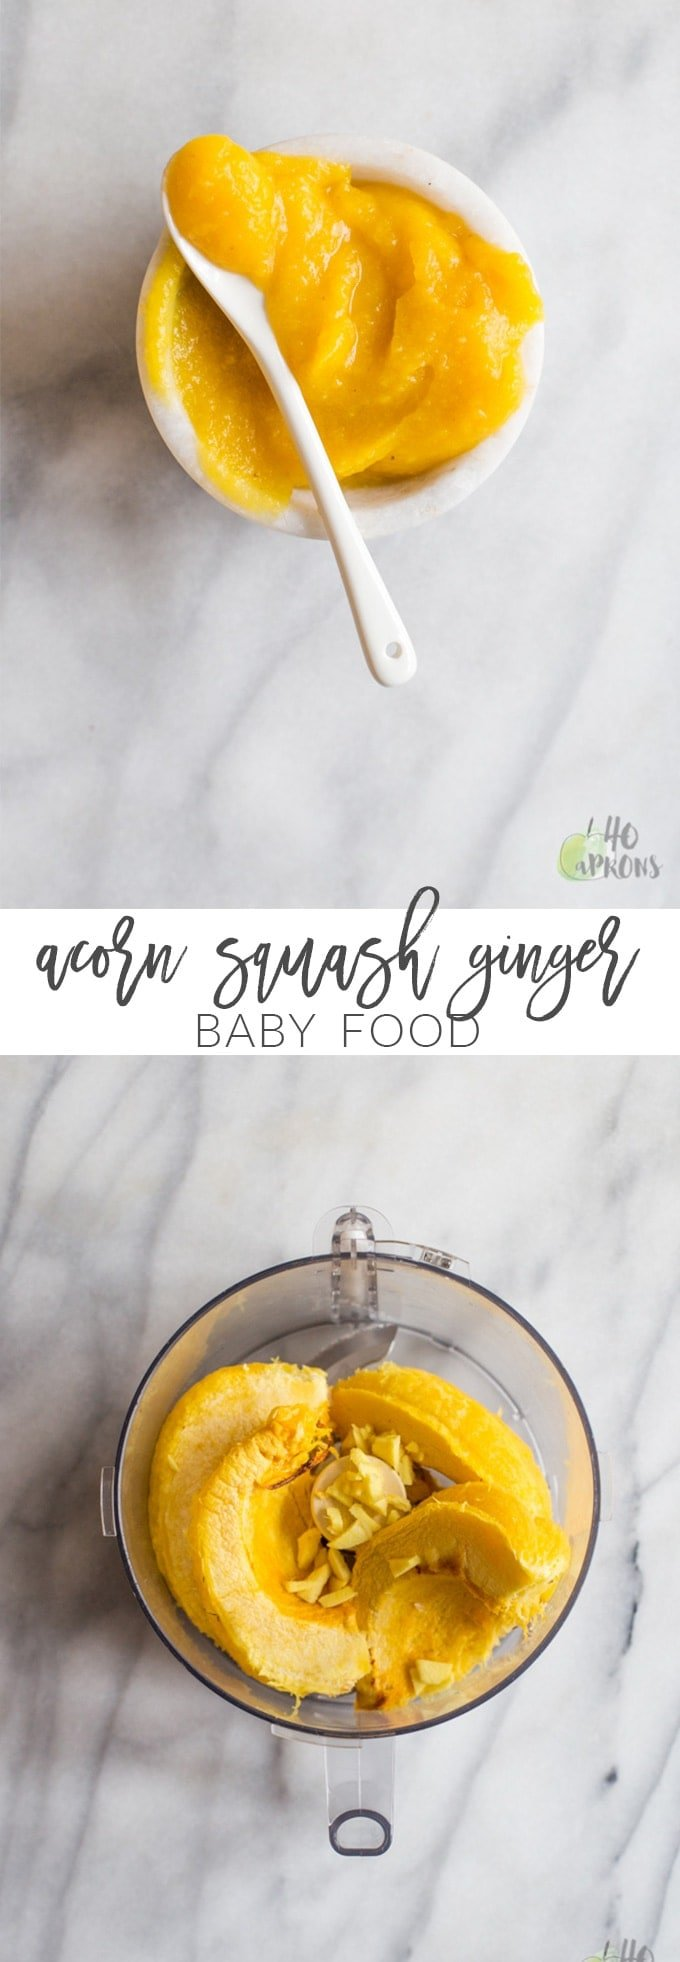 Acorn squash and ginger baby food puree. Easy, cheap, and so flavorful and nutritious for baby. Great for big kids too!